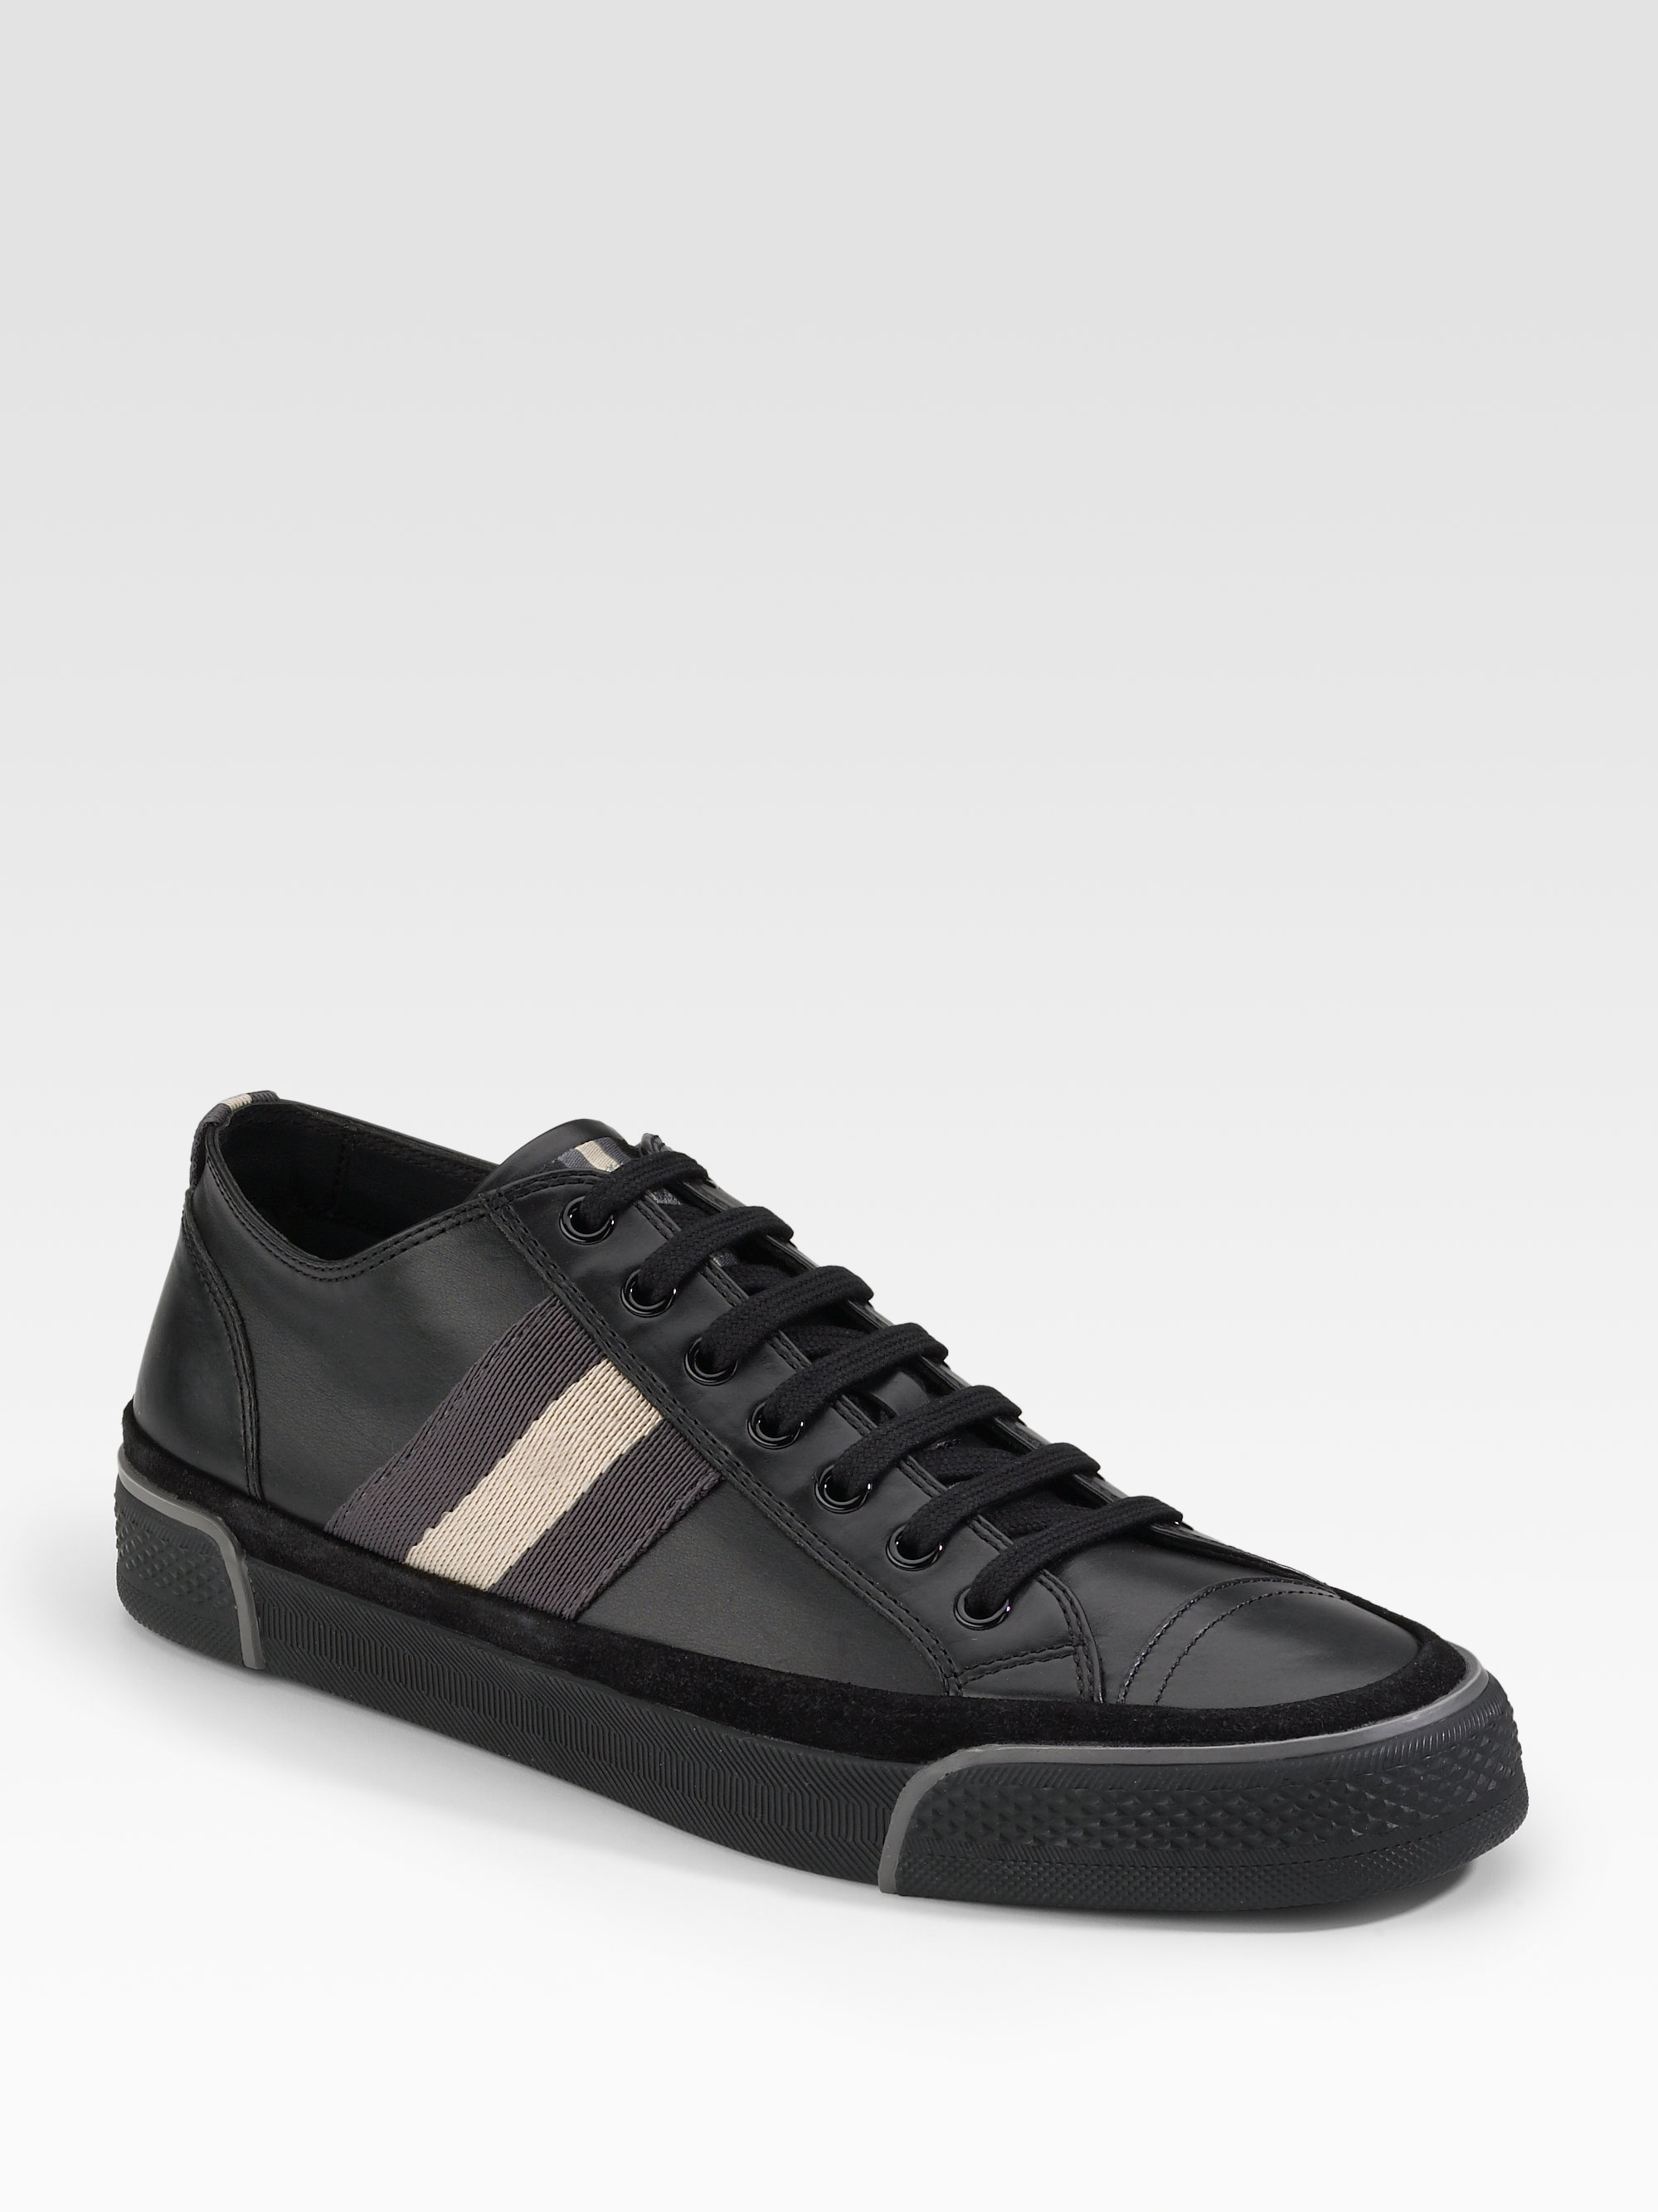 Bally Suede Sneakers In Black For Men